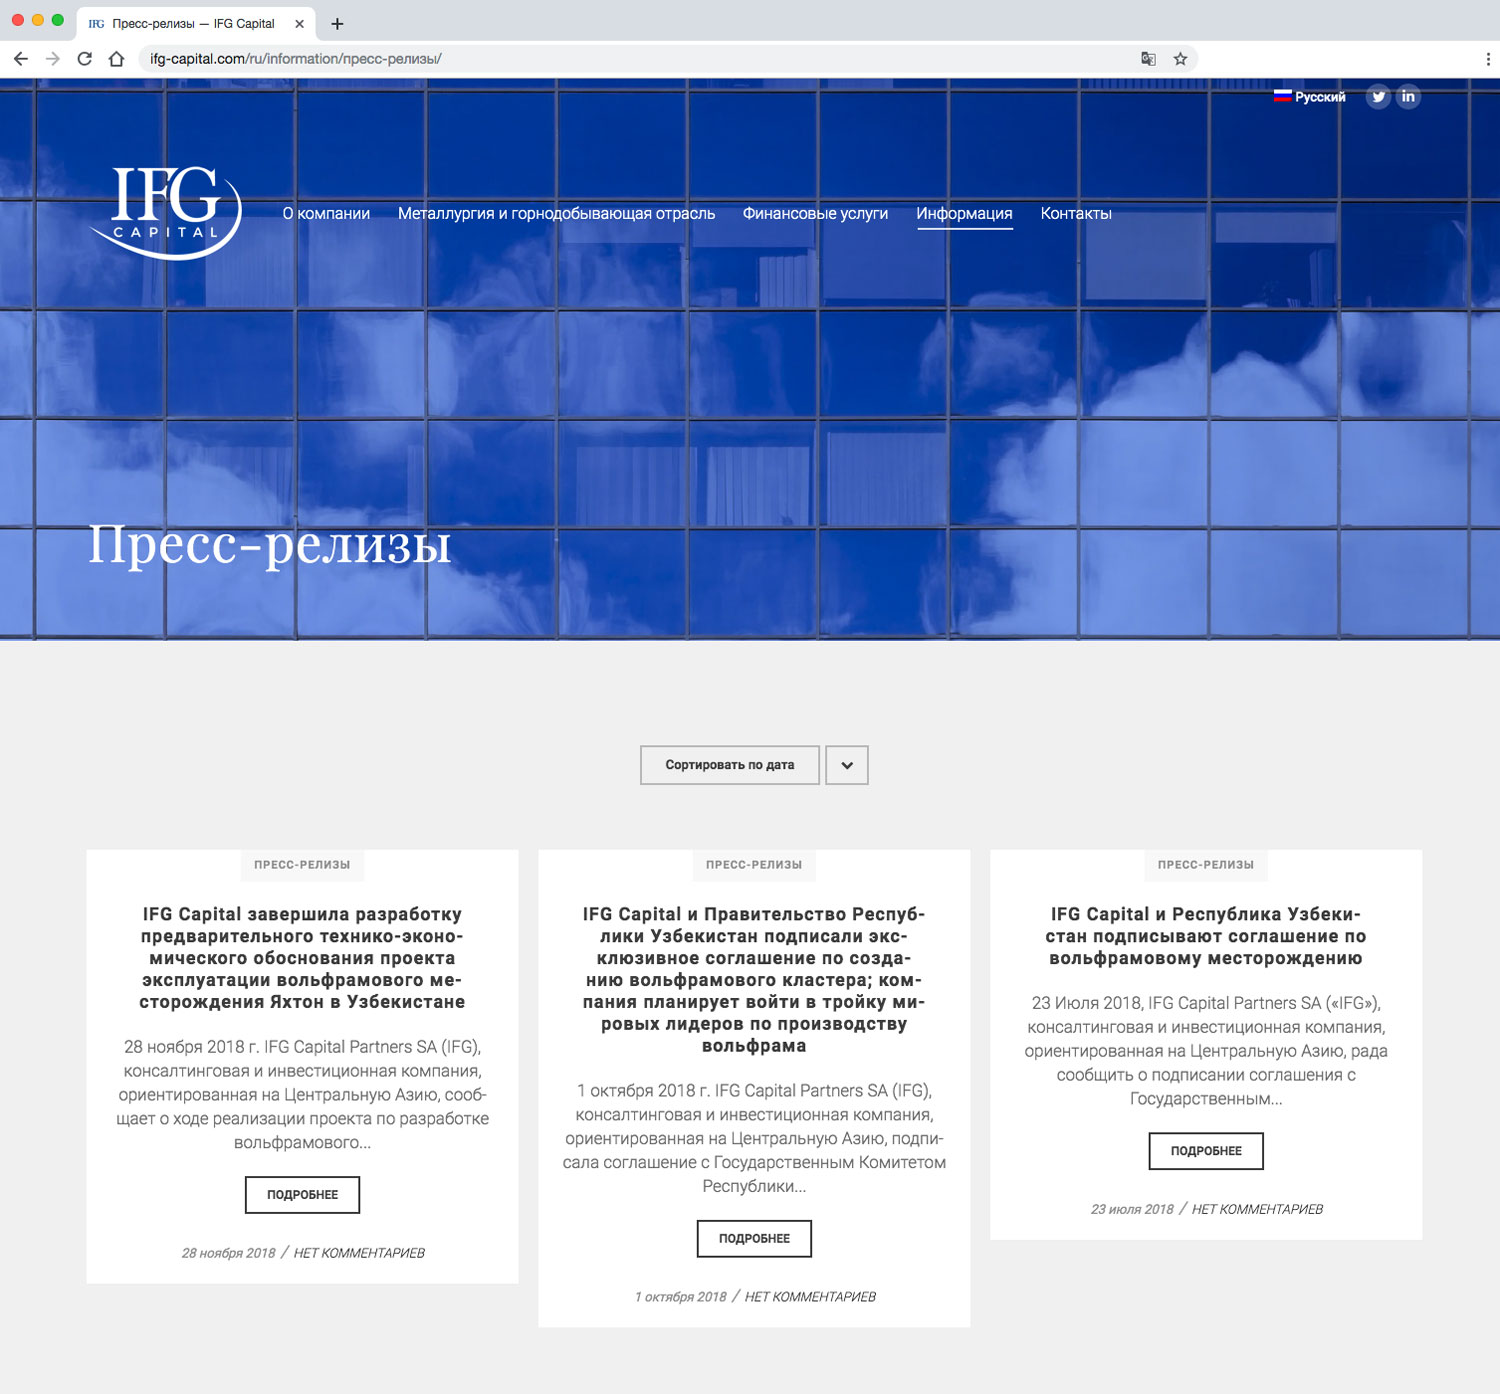 IFG Capital - Press Releases - Russian translation